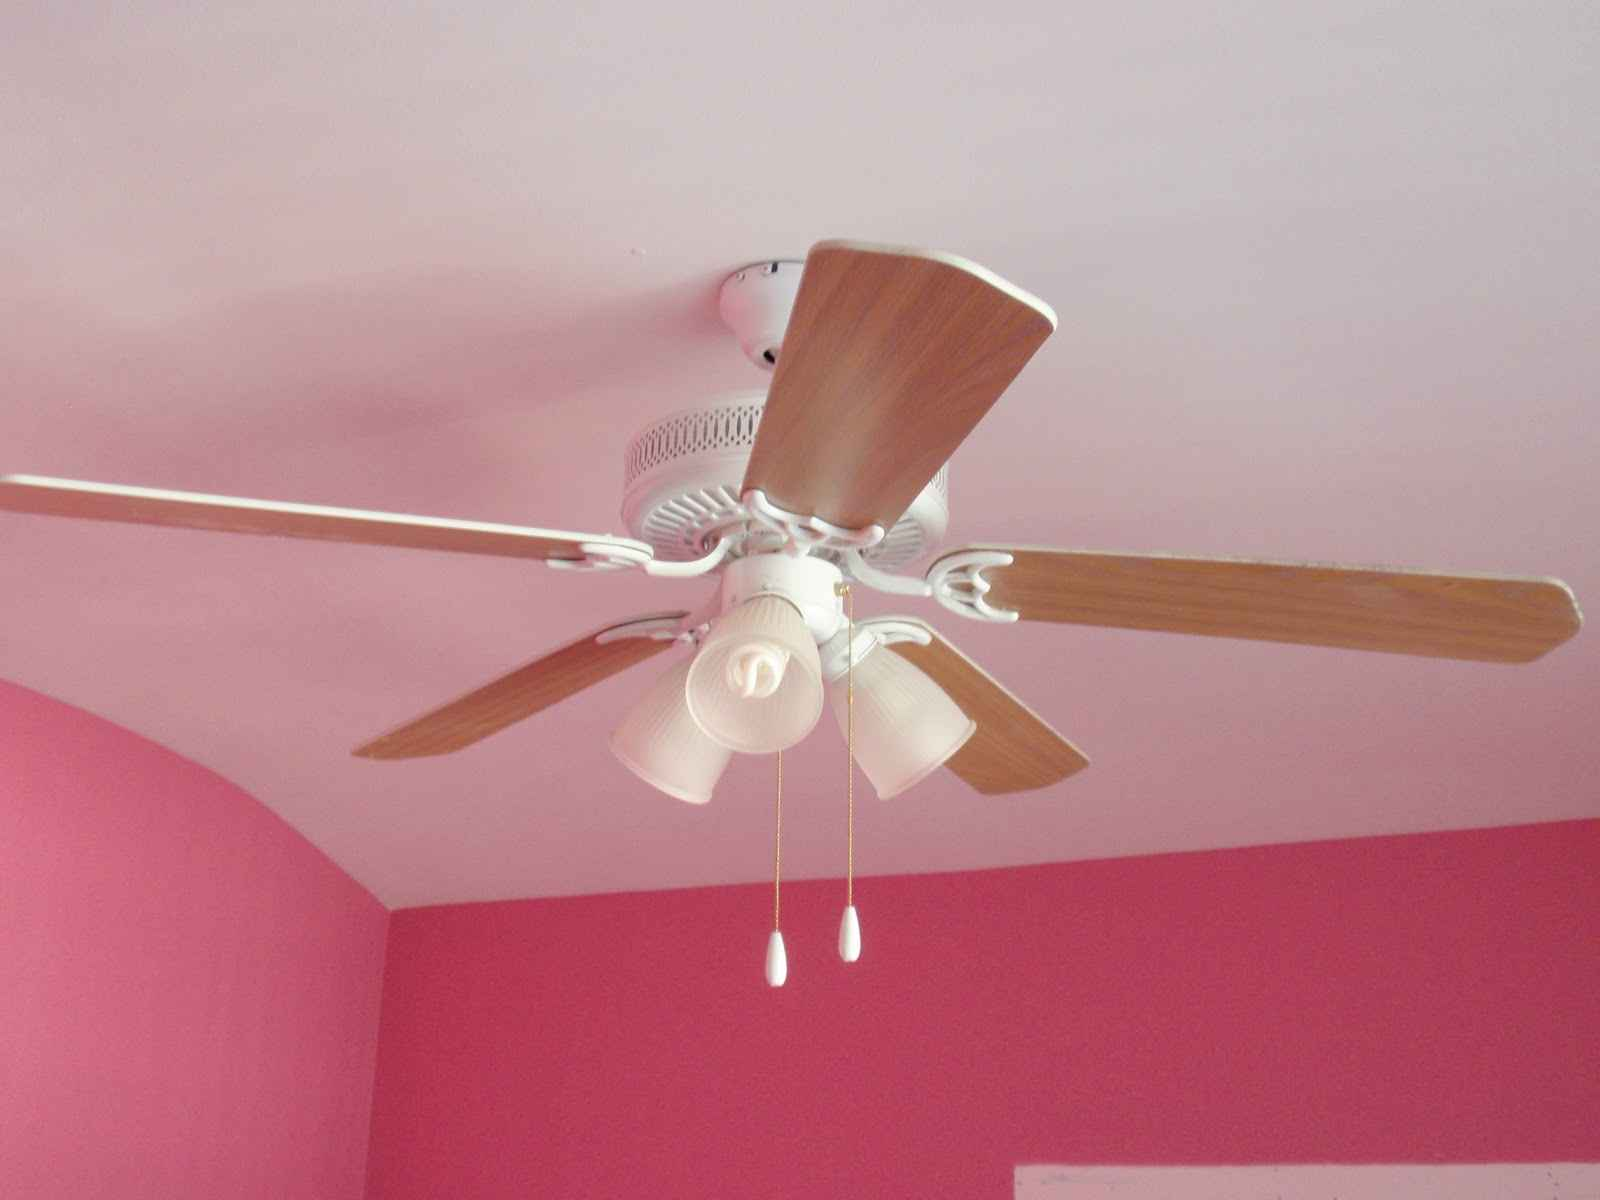 Home Depot Hunter Fans Wooden Bedroom Ceiling Fan With Light (Image 6 of 10)